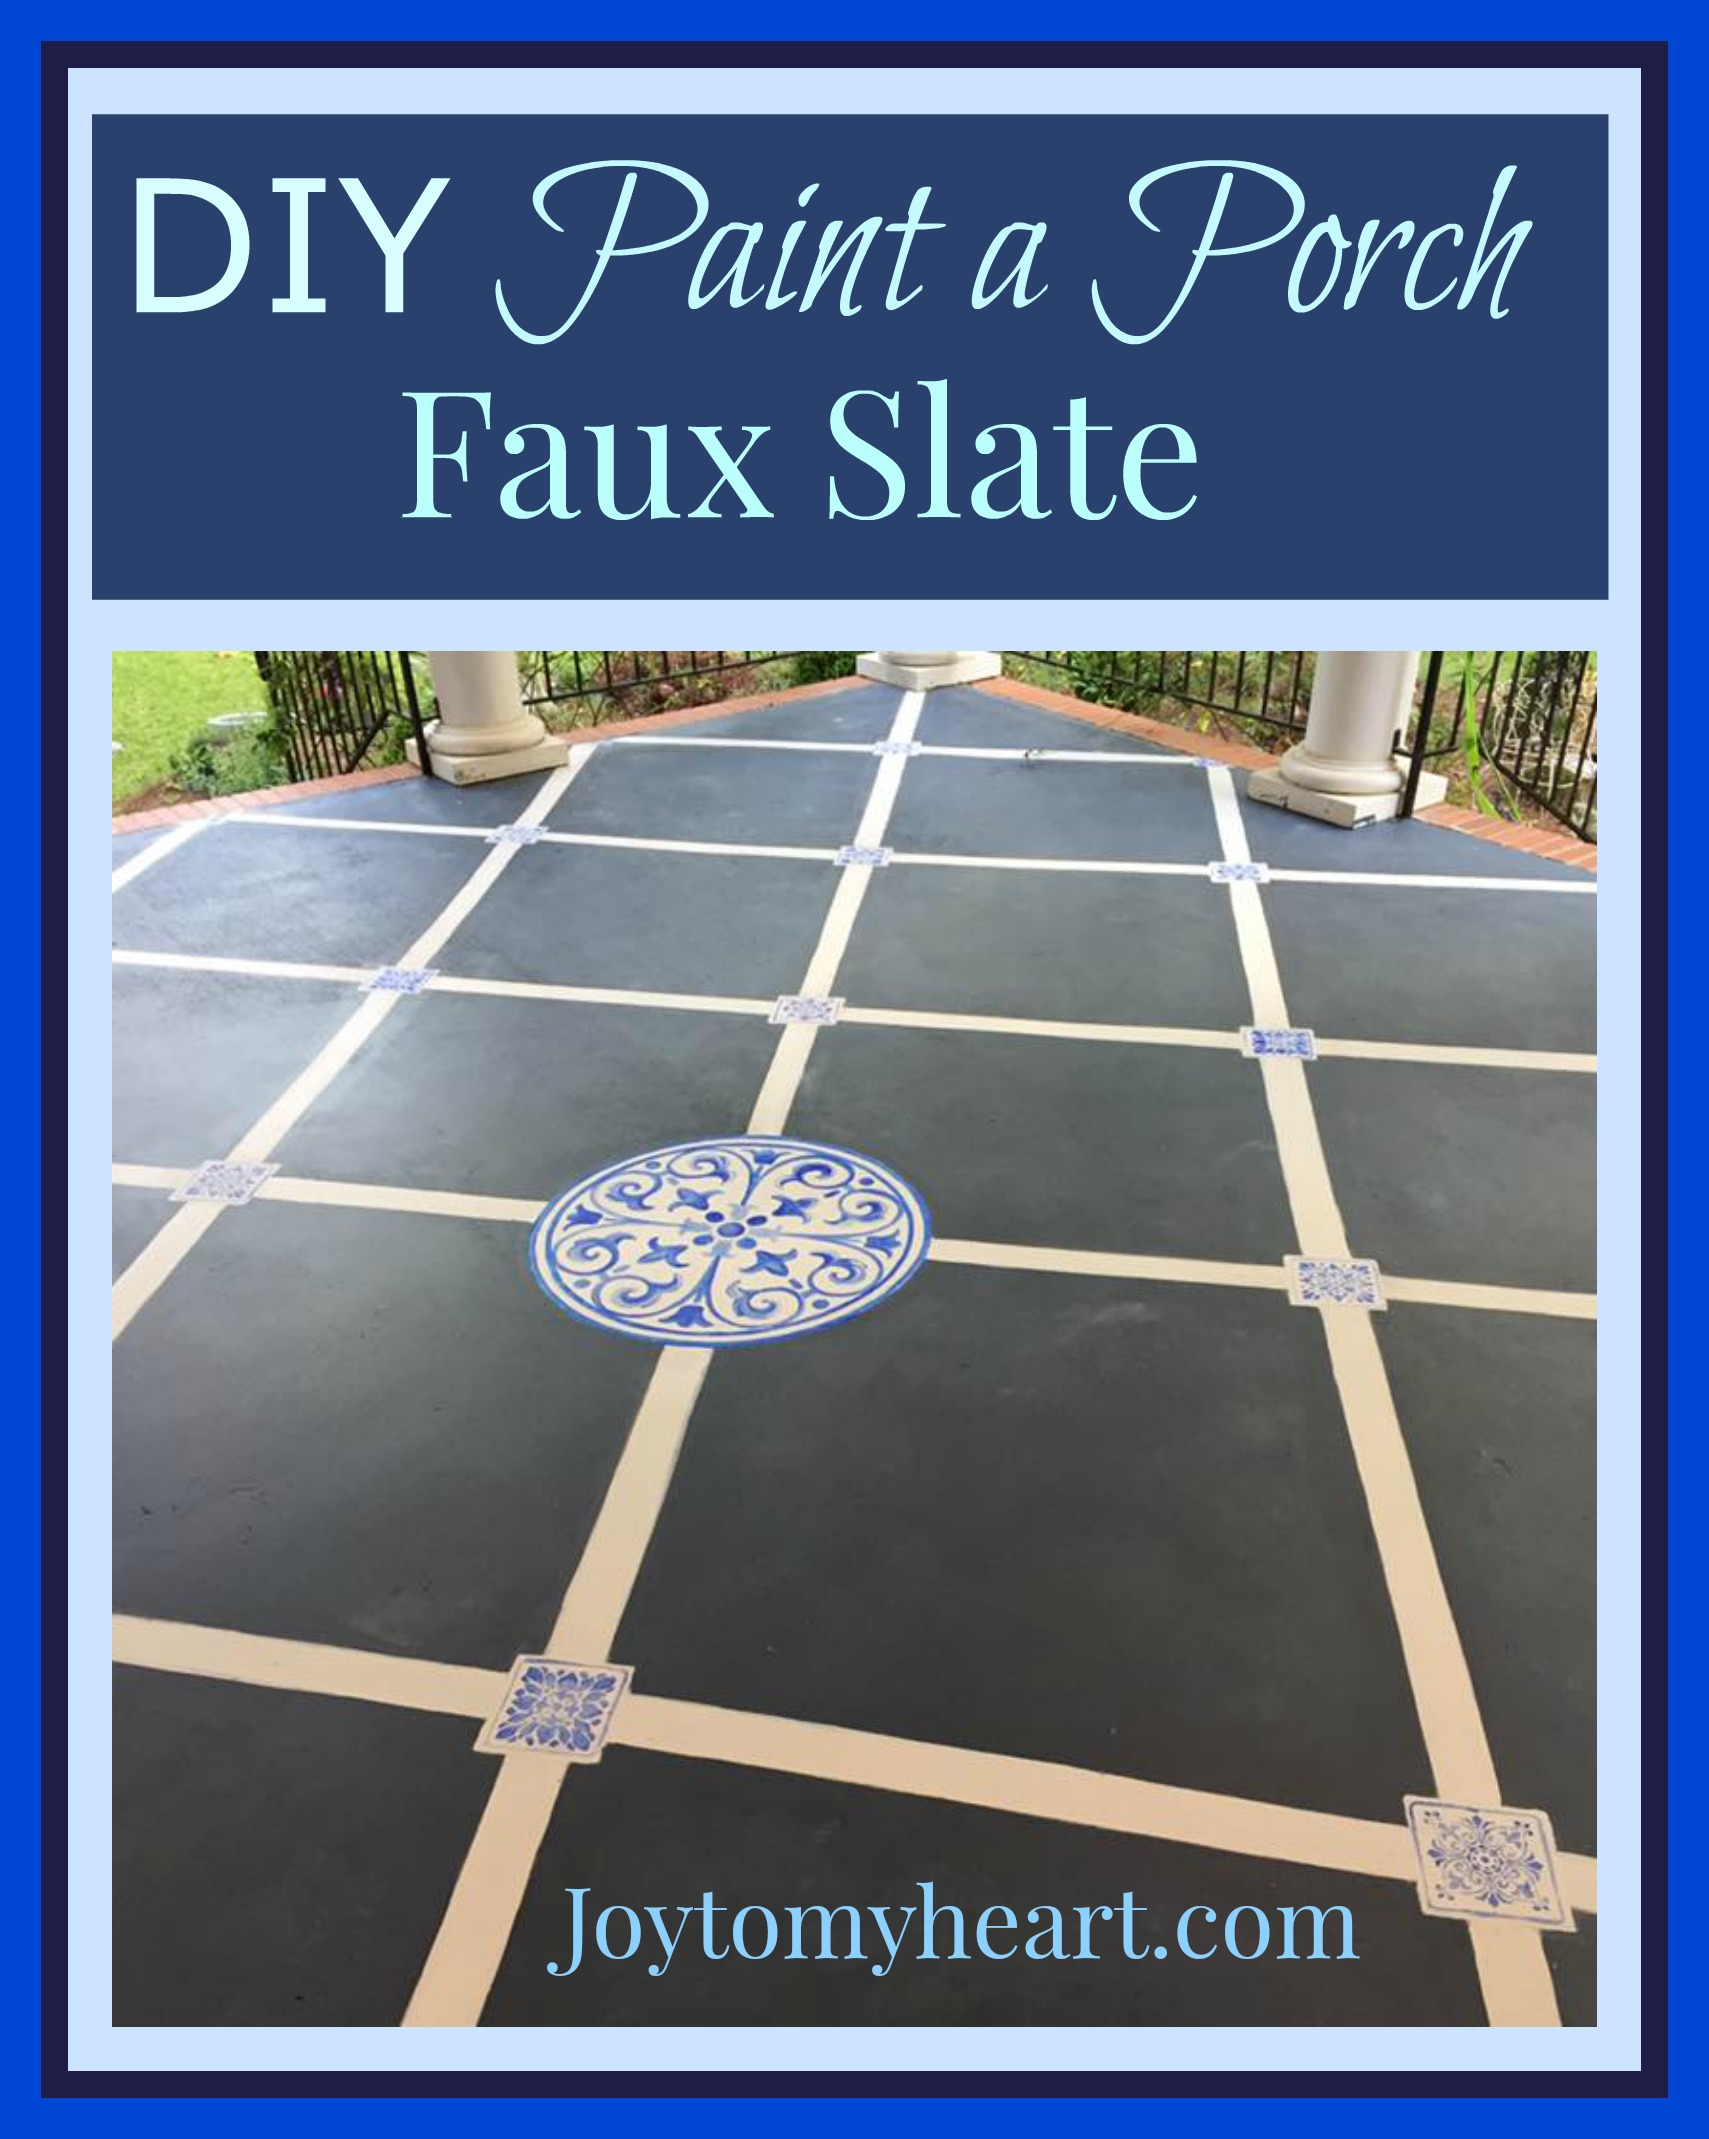 Diy paint a porch faux slate with stencil tiles joy to my heart i know people say painting will be a pain to keep upbut so would staining both will scratch i opted to paint my porch faux slate with stencil tiles dailygadgetfo Images